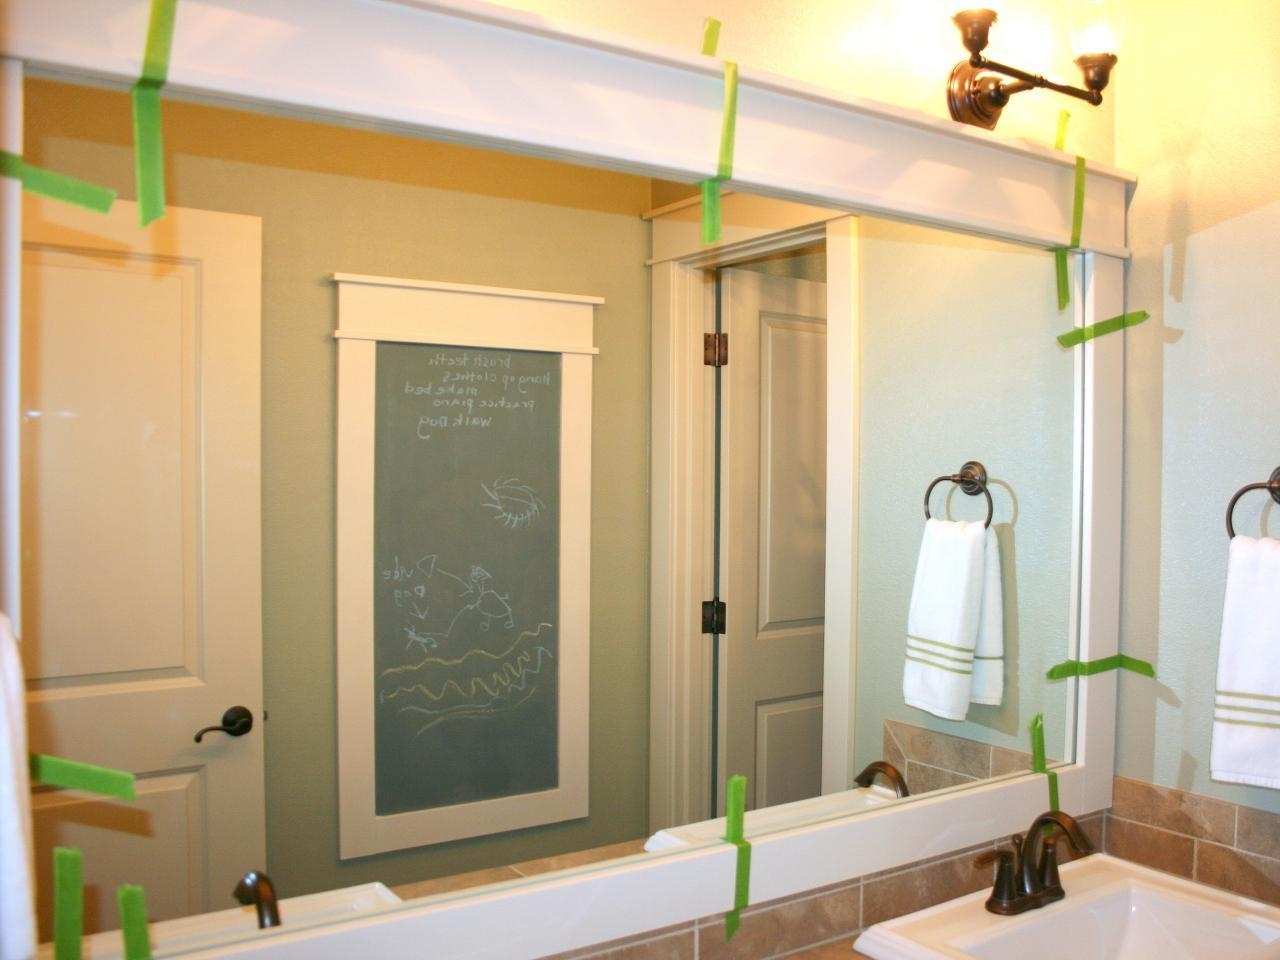 How To Frame A Mirror | Hgtv Within Large Mirrors For Bathroom Walls (Image 16 of 20)